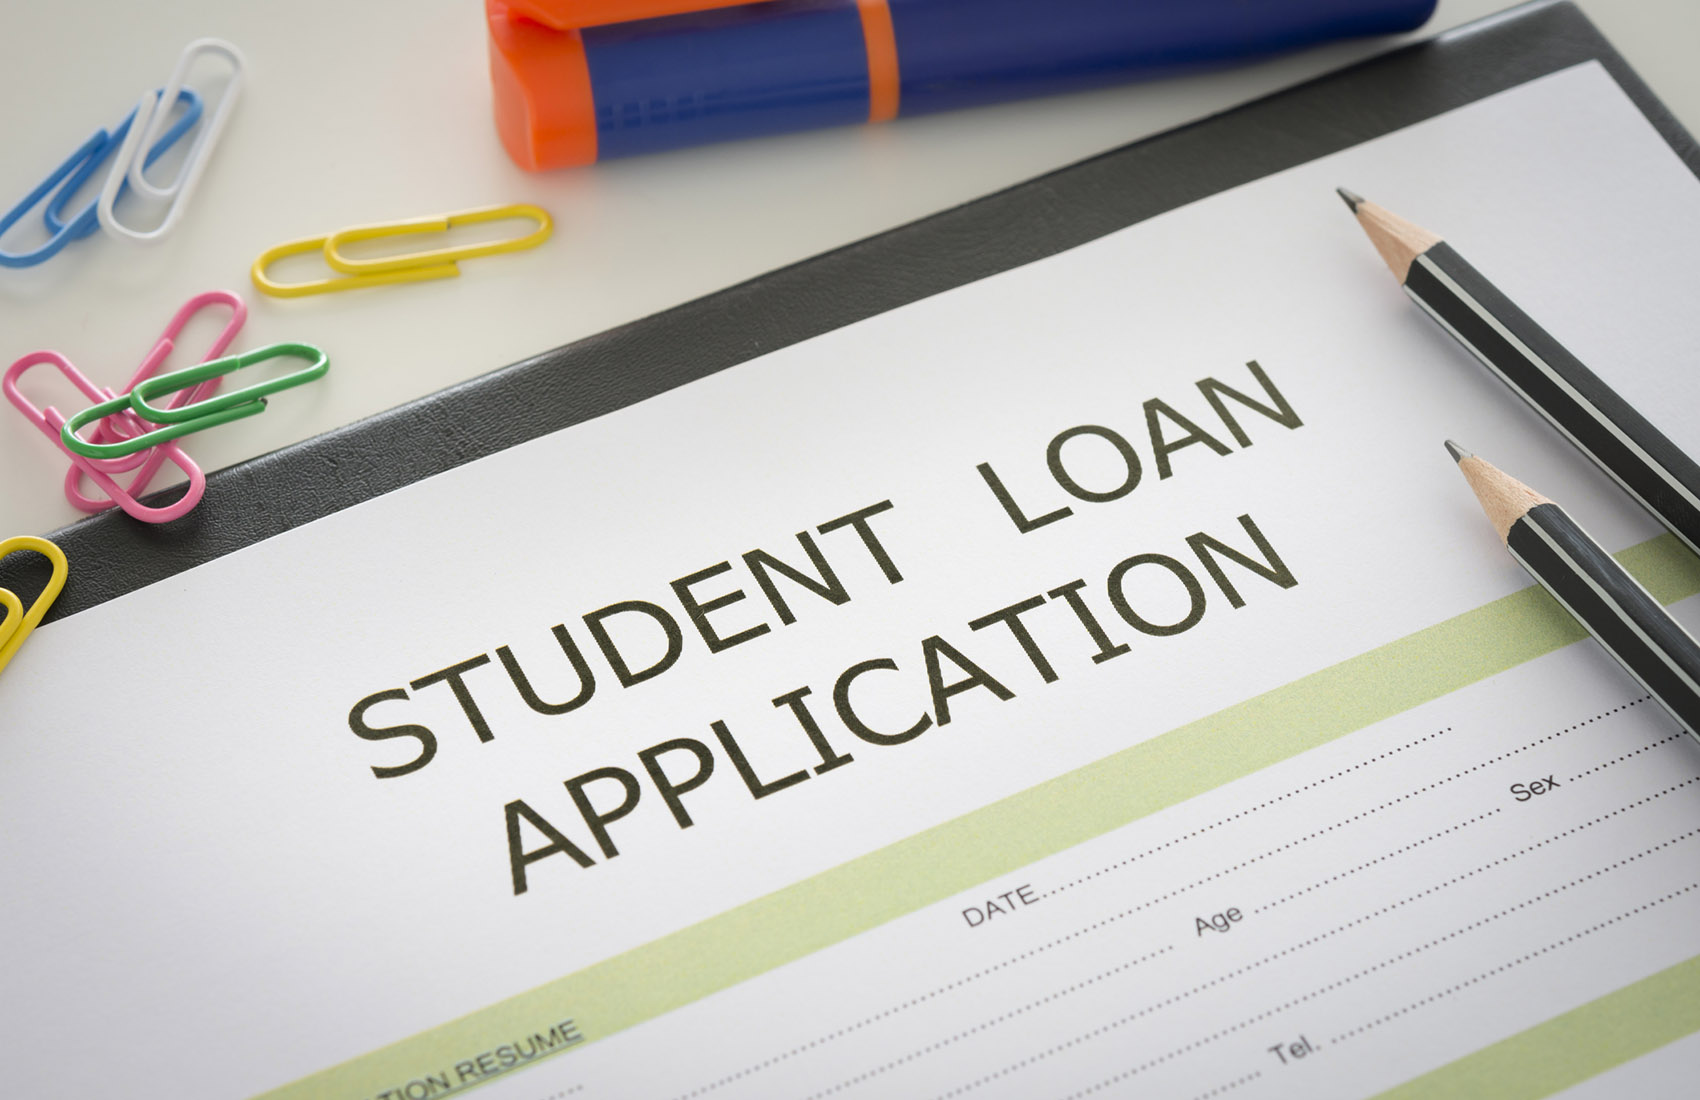 Student loan application form on desk with stationery